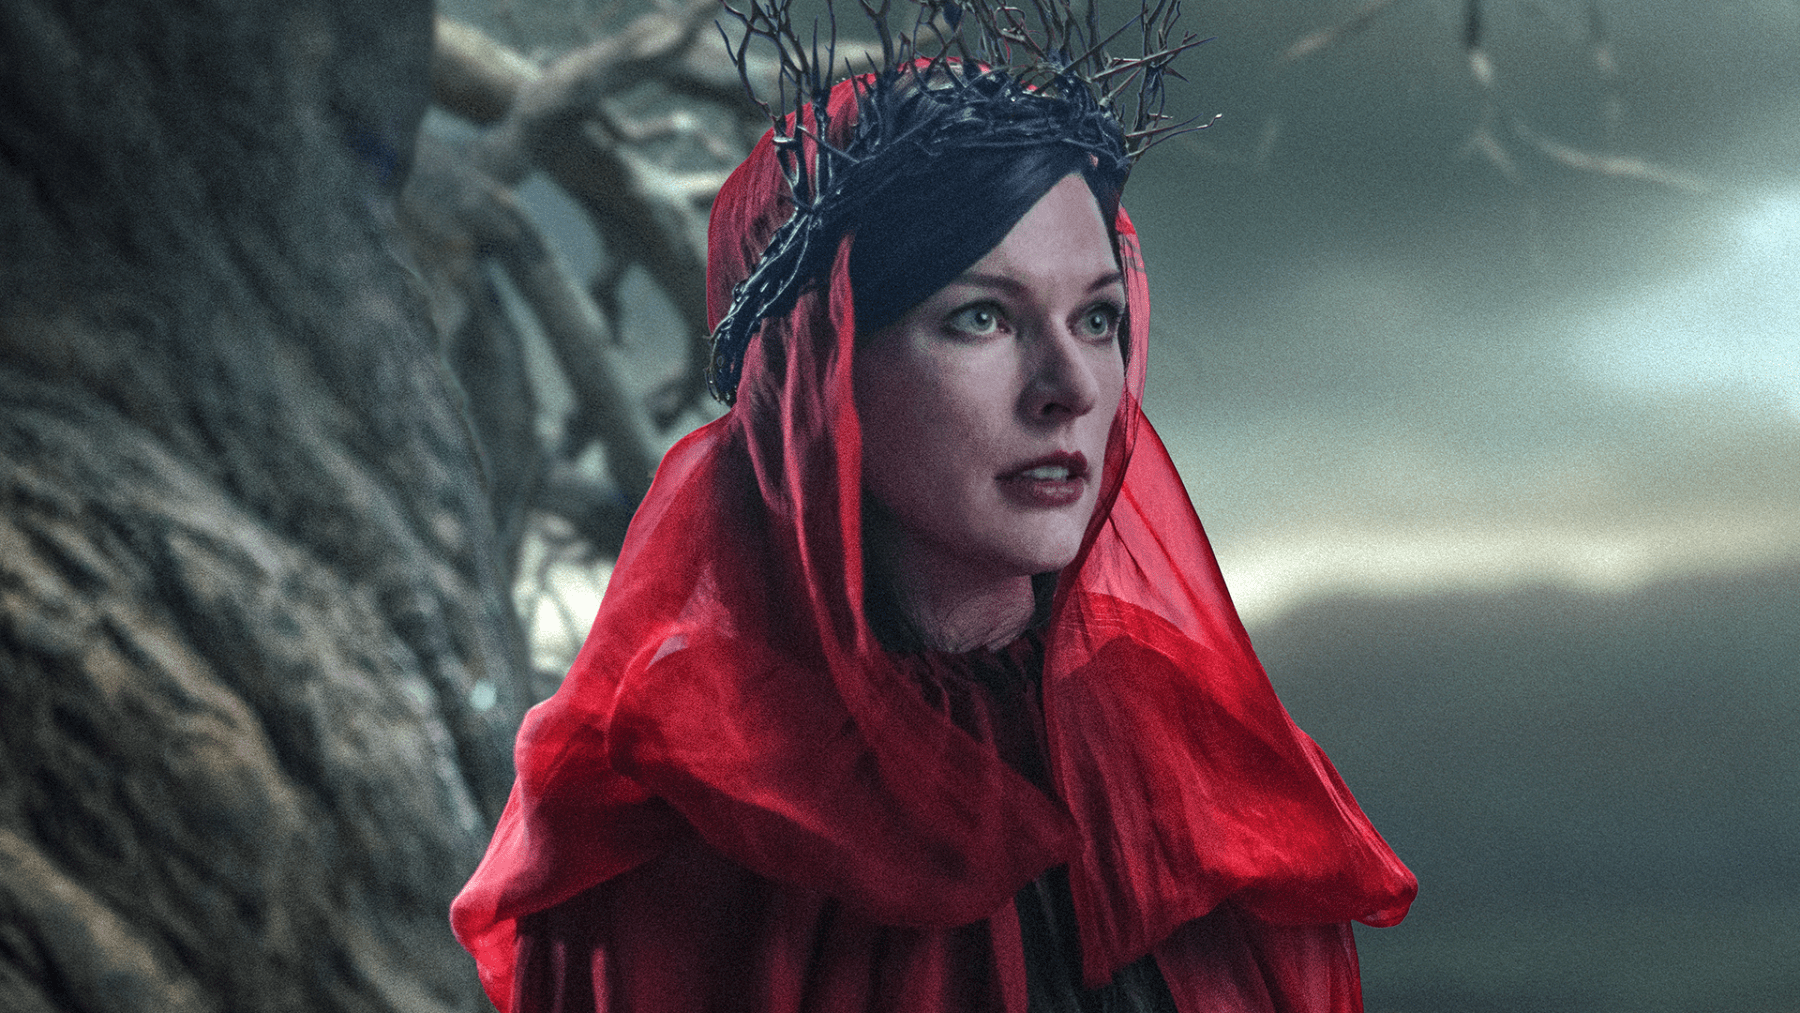 Milla Jovovich shines as the Blood Queen in Neil Marshall